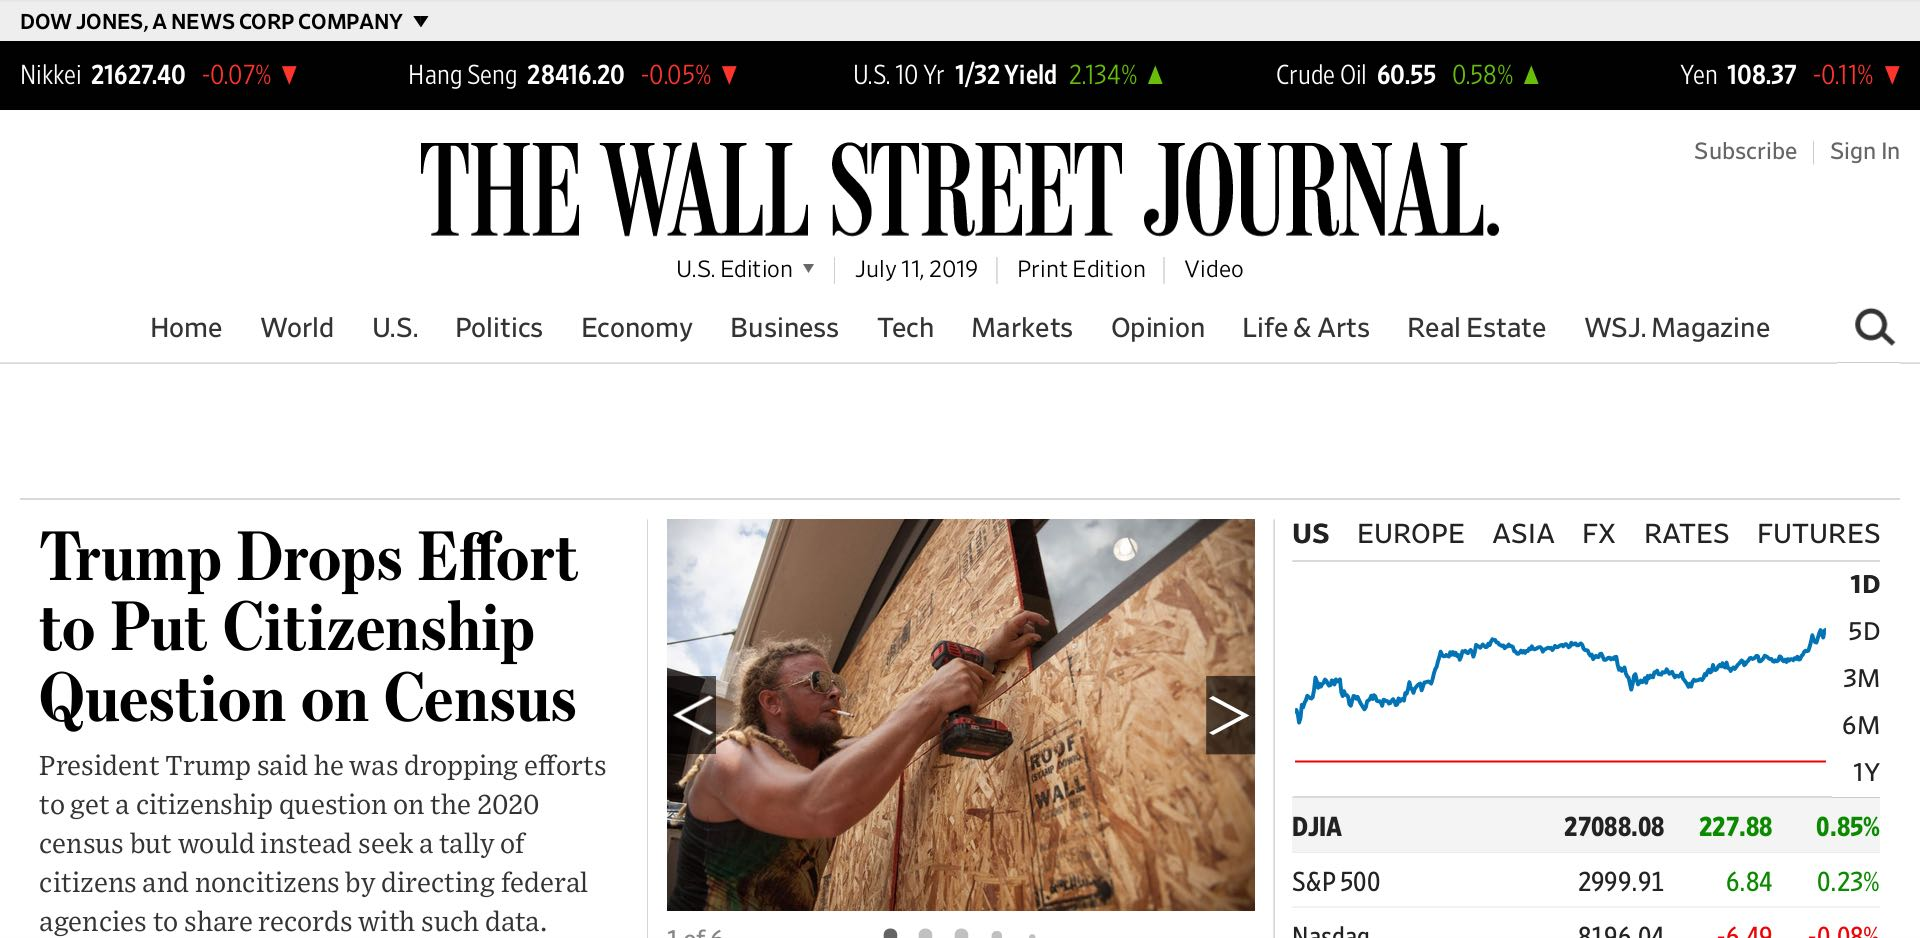 The Wall Street Journal home page on July 7, 2019